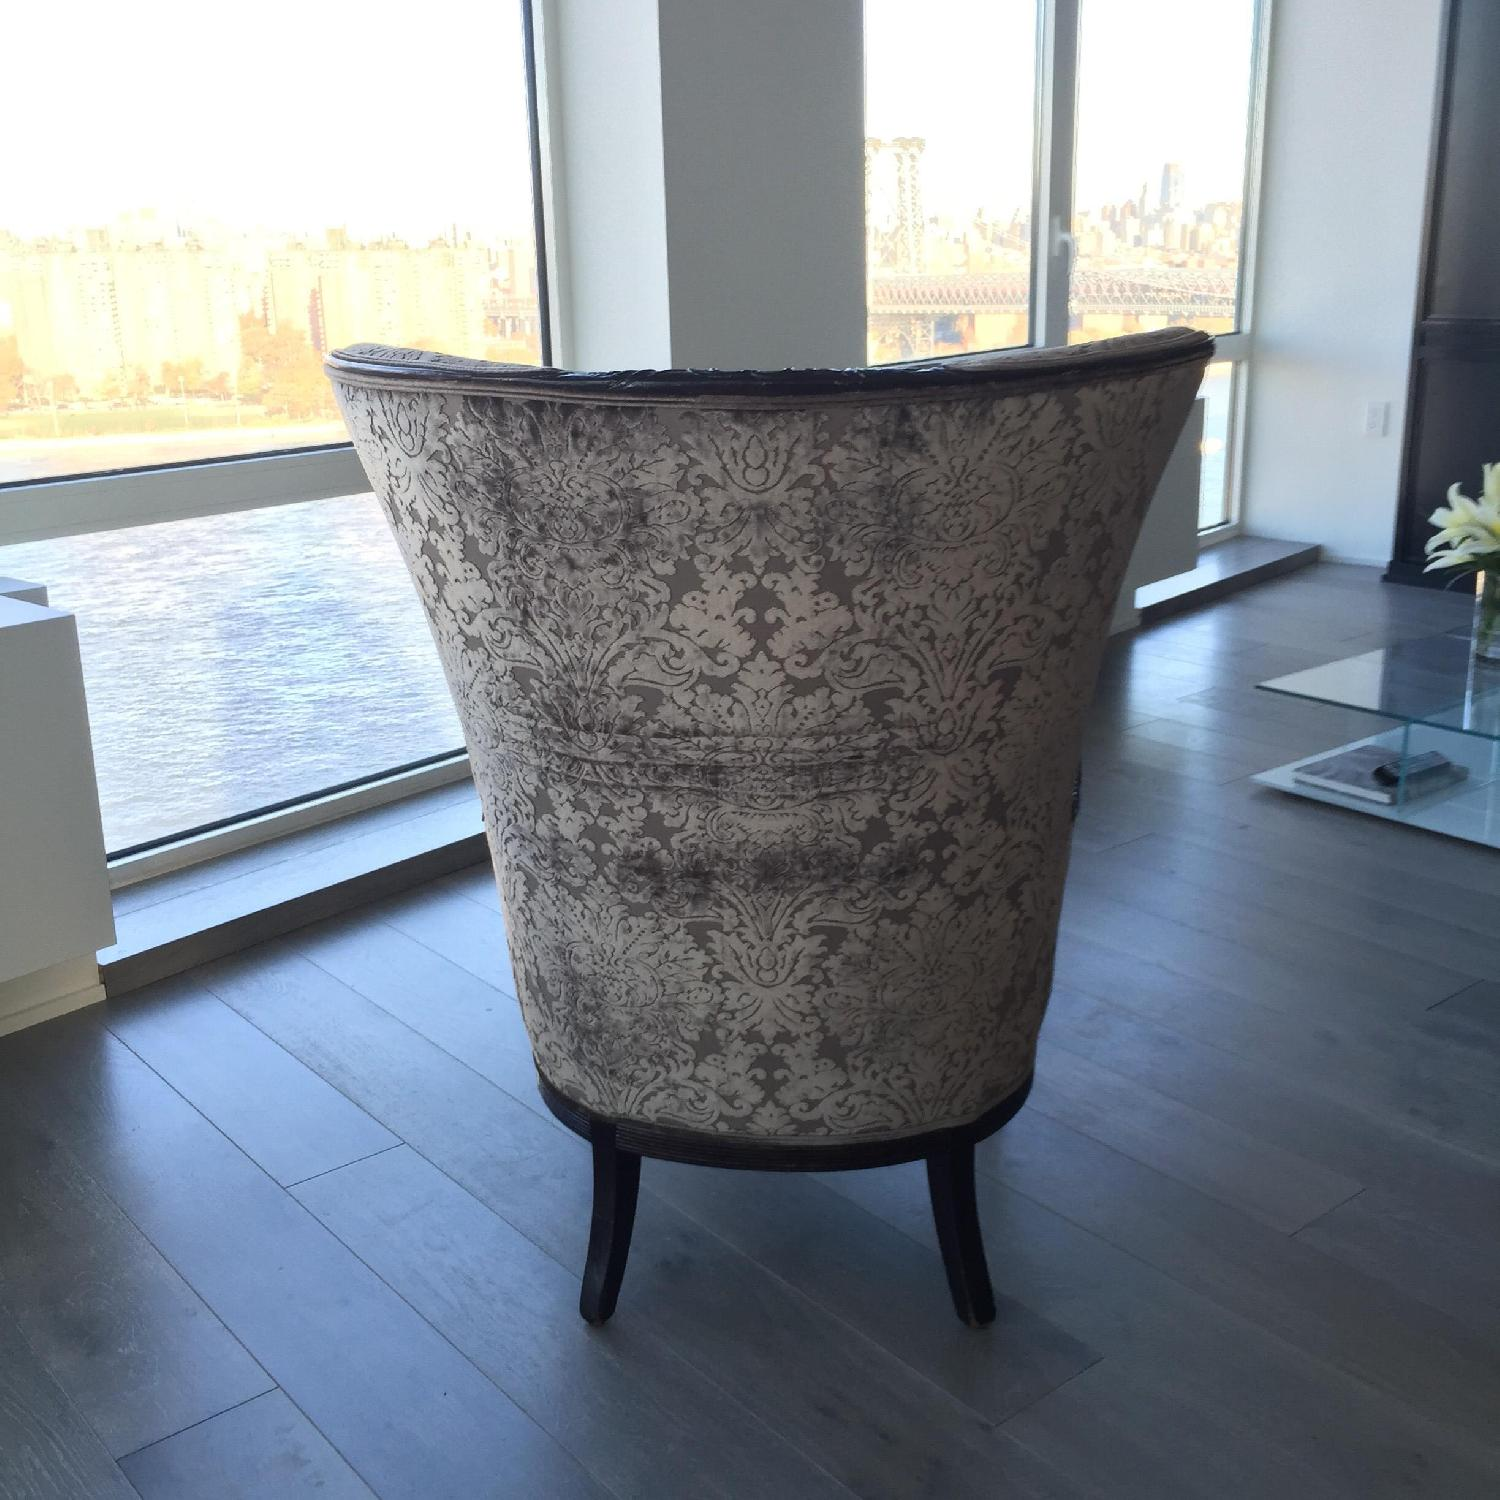 Antique High-Backed Reupholstered Gray Fabric Armchair - image-4